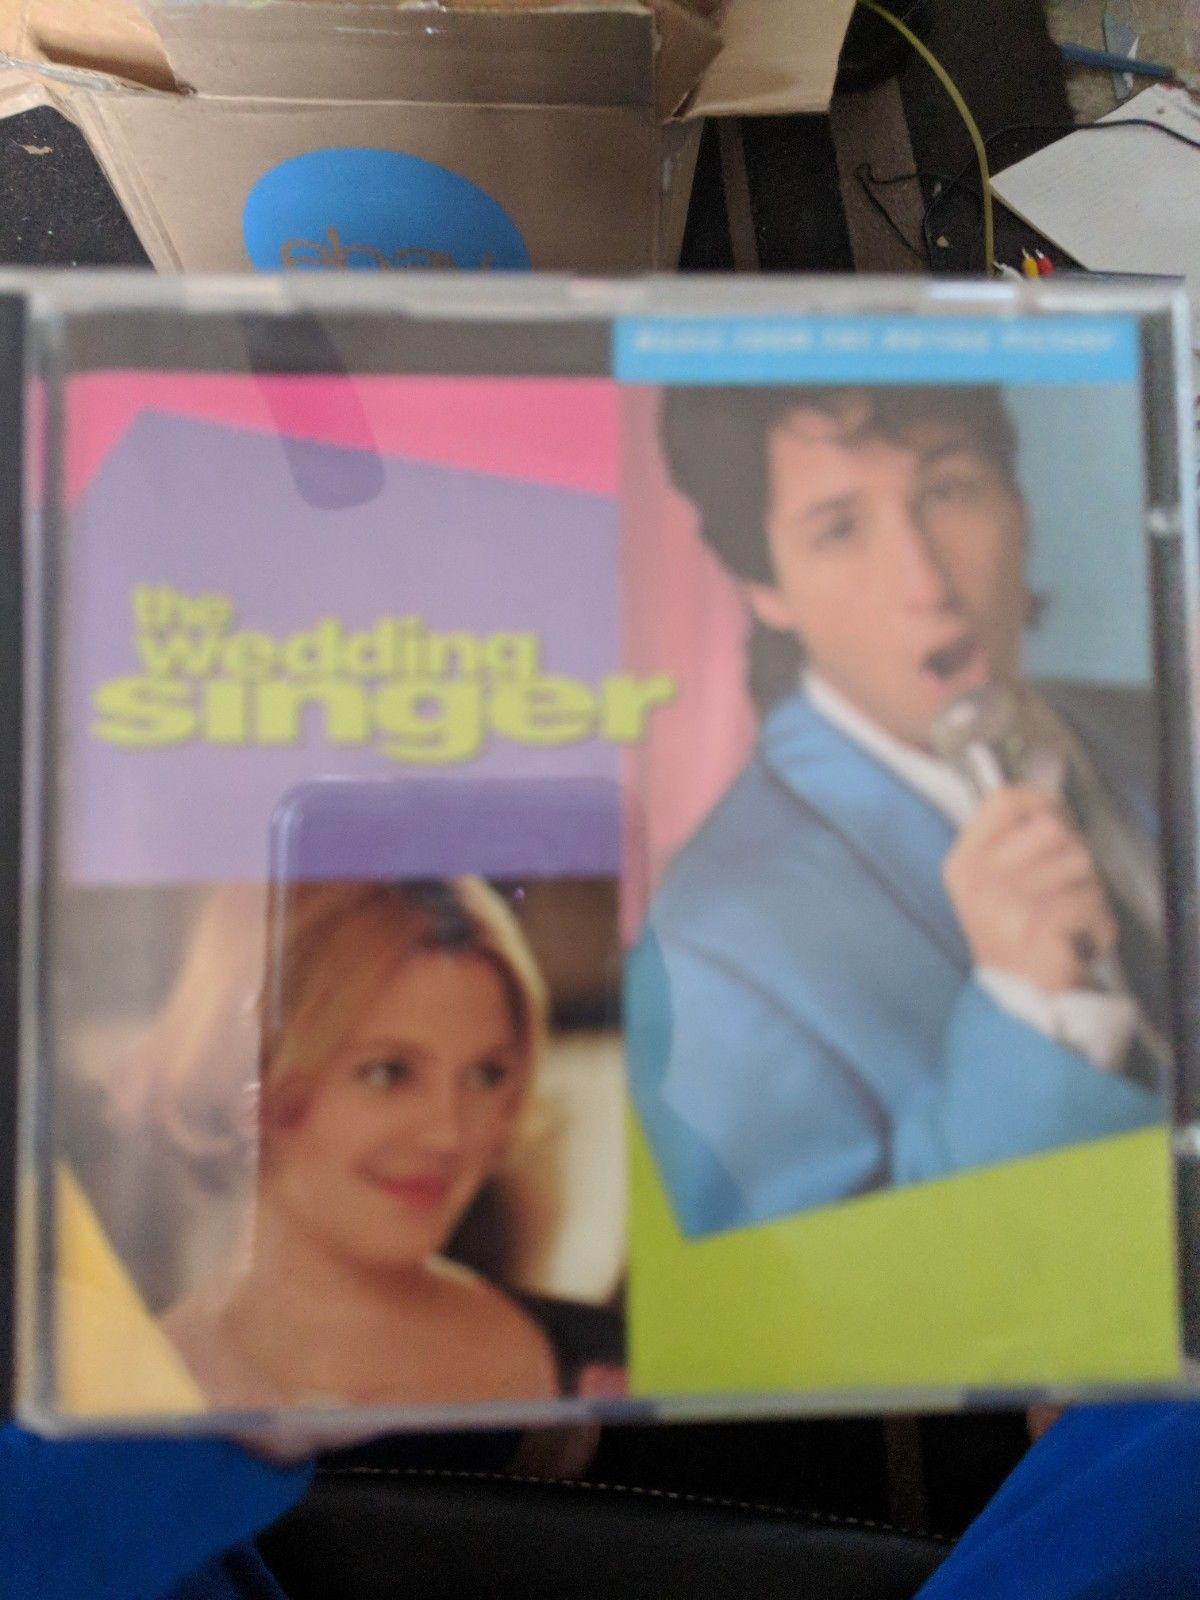 Music From The Motion Picture The Wedding Singer (CD)